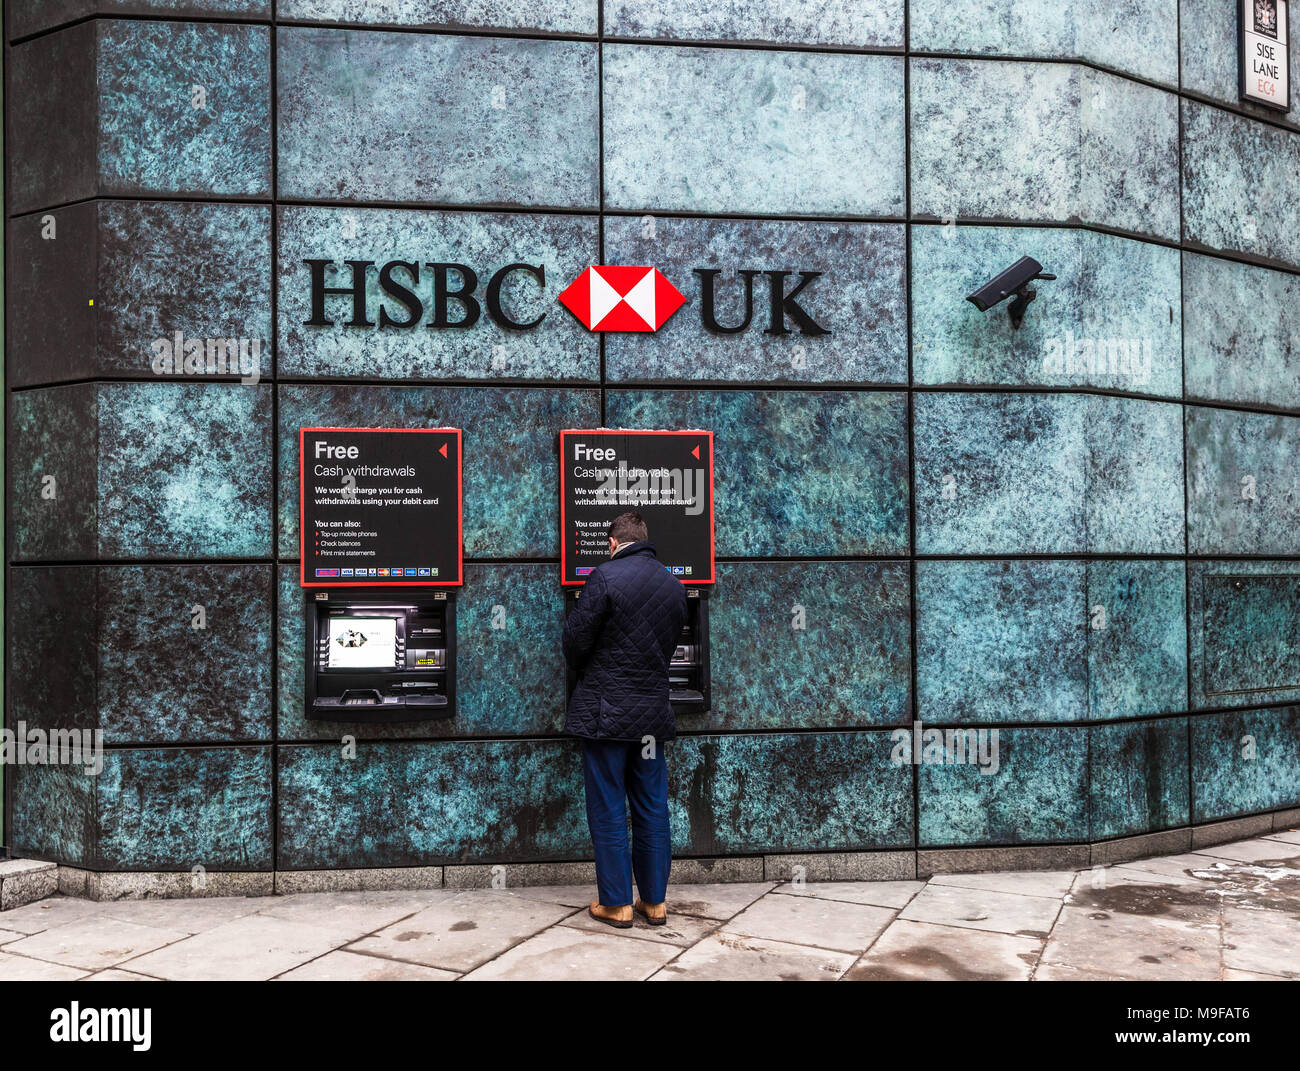 Rear view of a man withdrawing money from a HSBC Bank ATM, Queen Victoria Street, London, EC2, England, UK. Stock Photo